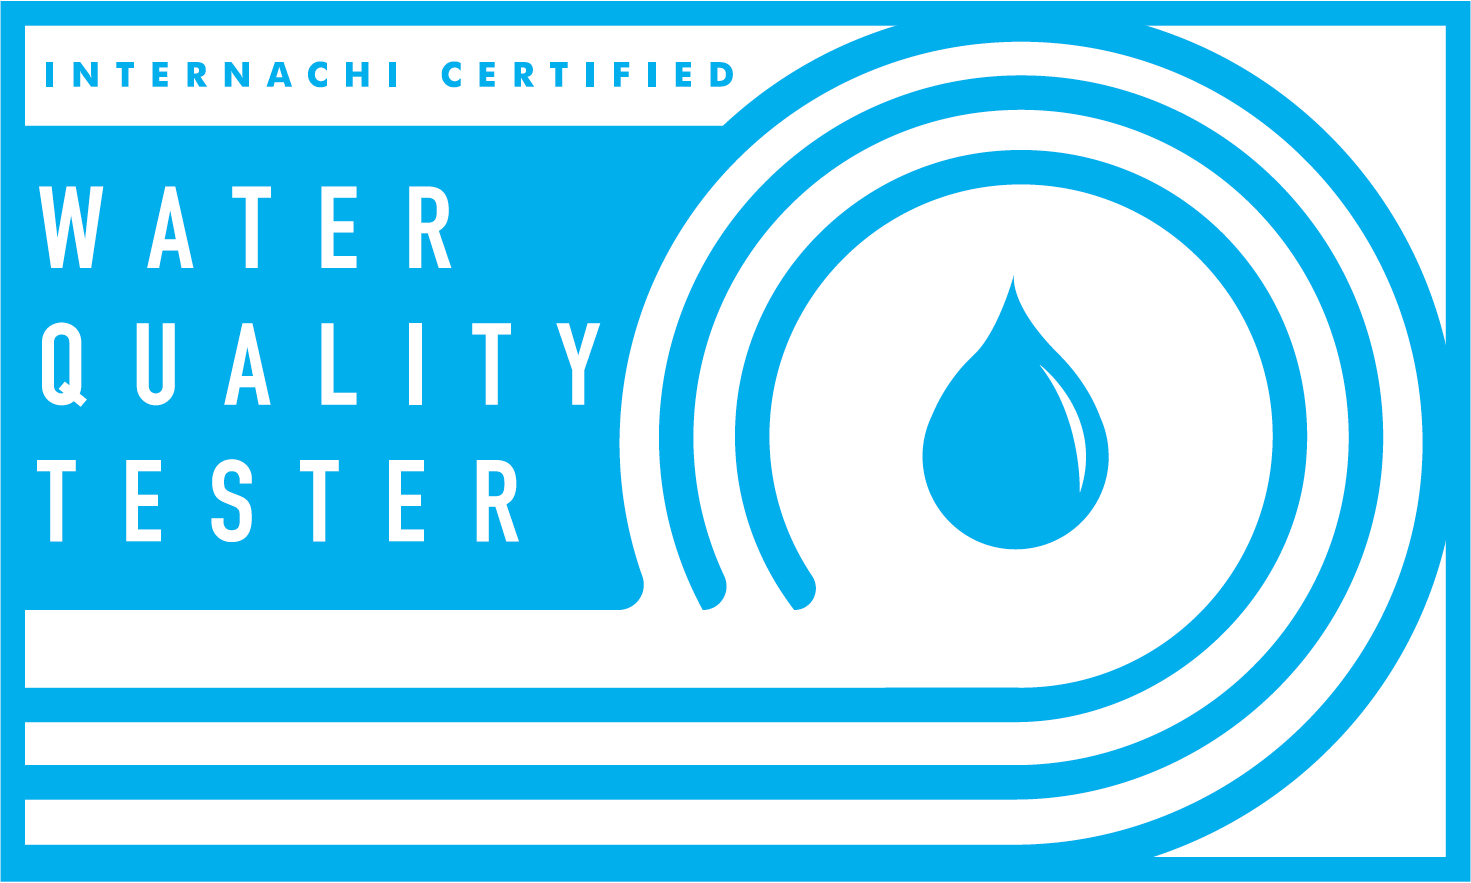 More than 45 inspector certifications free online for members water quality tester certification 1betcityfo Images